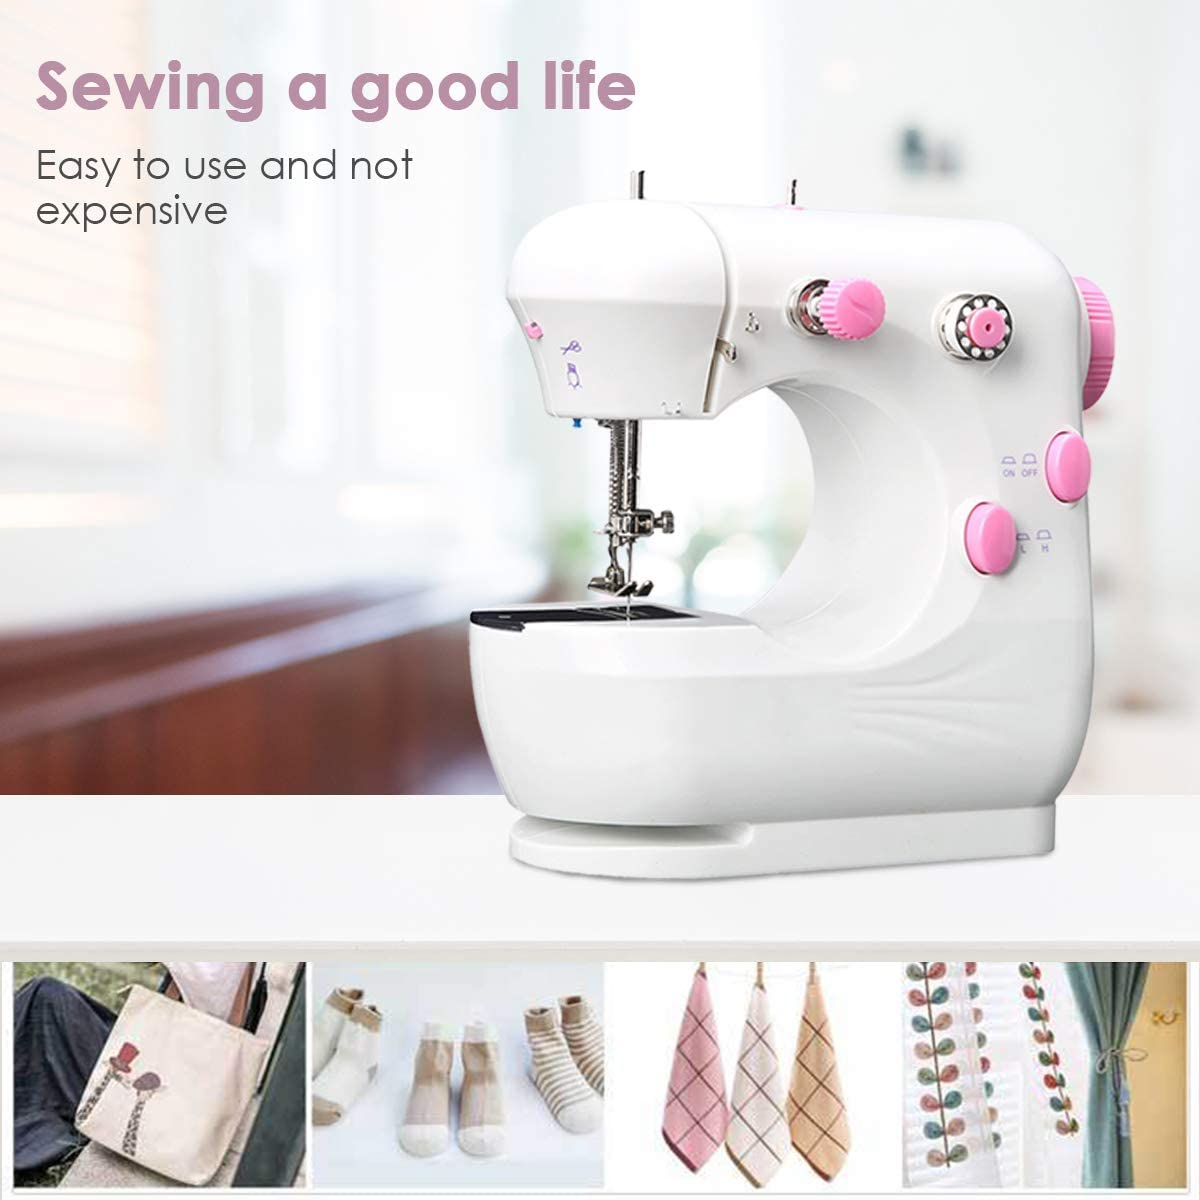 Haokaini Electric Sewing Machine Multifunction Crafting Sewing Machine Portable with Foot Pedal 2-Speed Adjustable,Mini Mending Machine Durable for Household Beginner